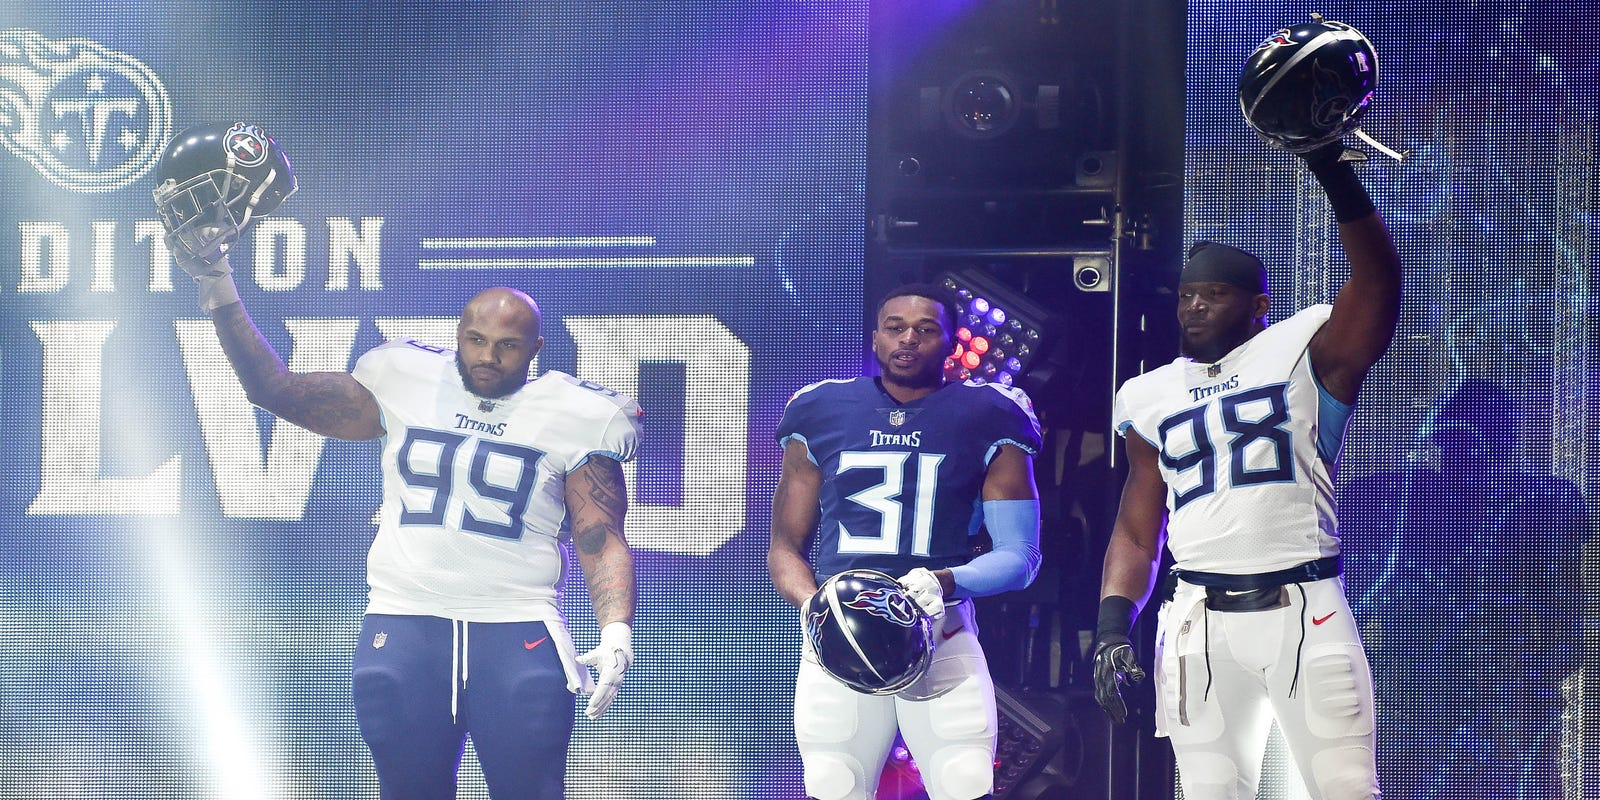 Titans uniforms unveiled during street party on Broadway d05cdf382